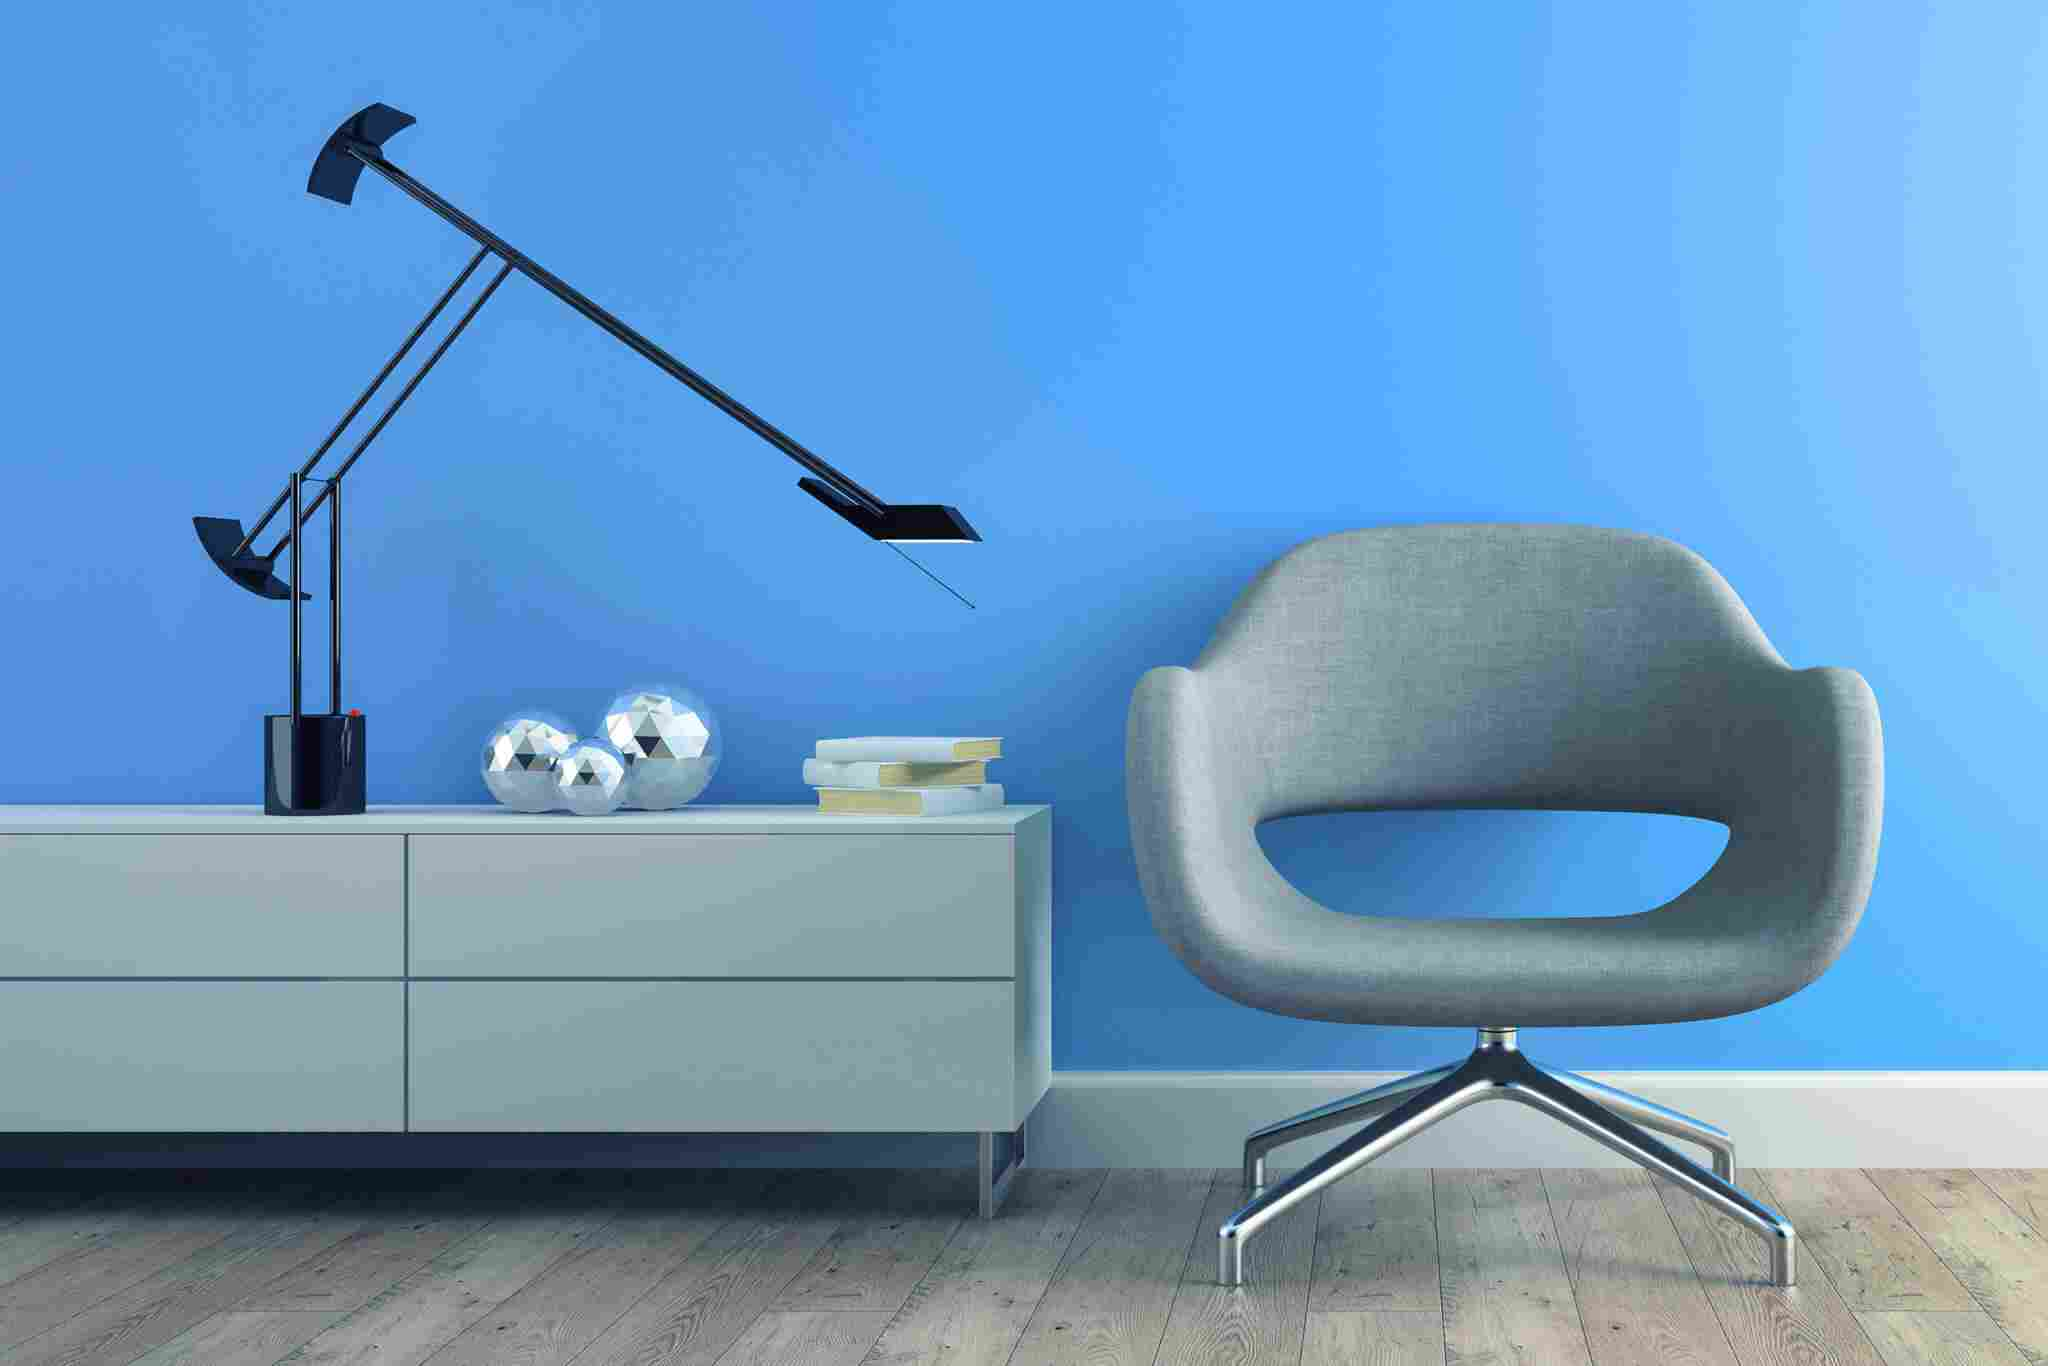 https://www.consolver.it/wp-content/uploads/2017/05/image-chair-blue-wall.jpg